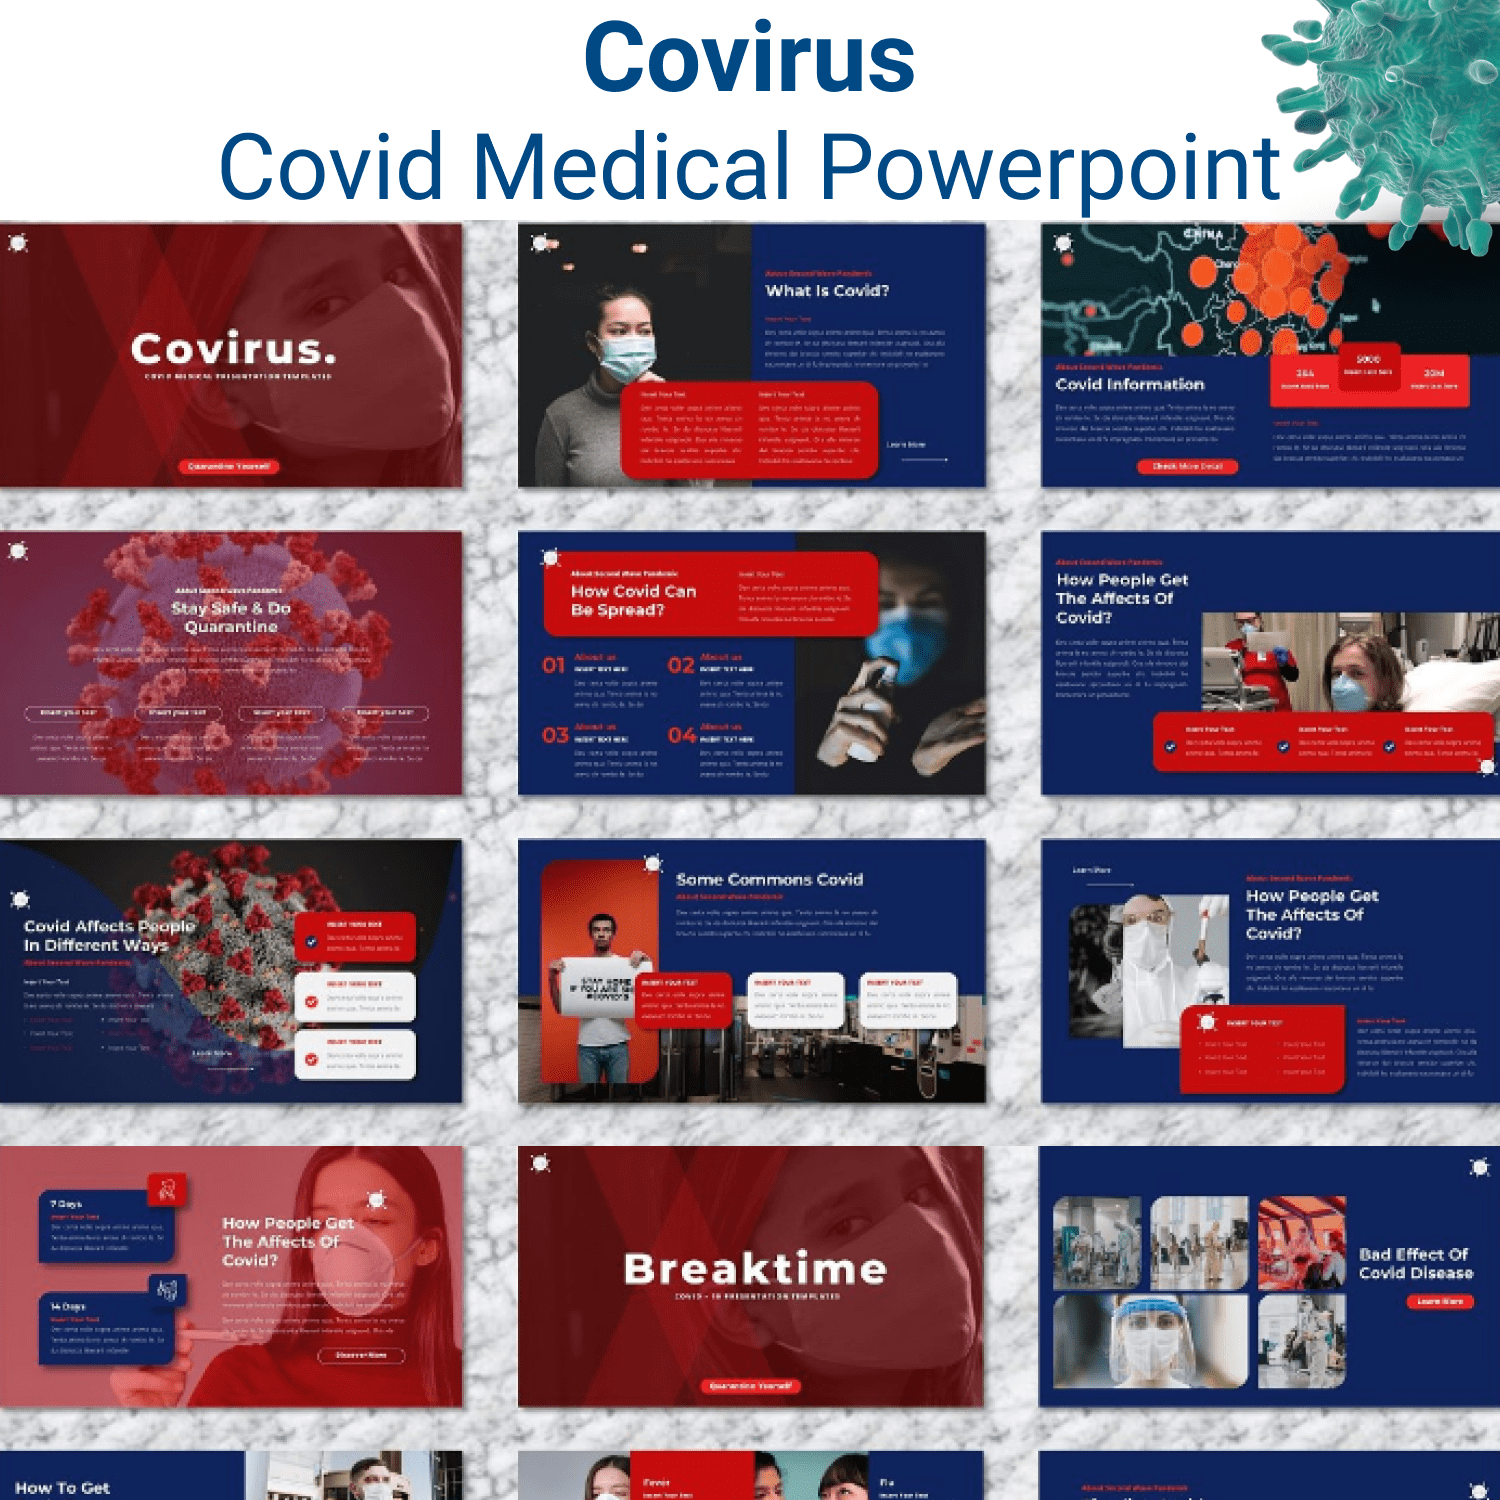 Covirus - Covid Medical Powerpoint main cover.